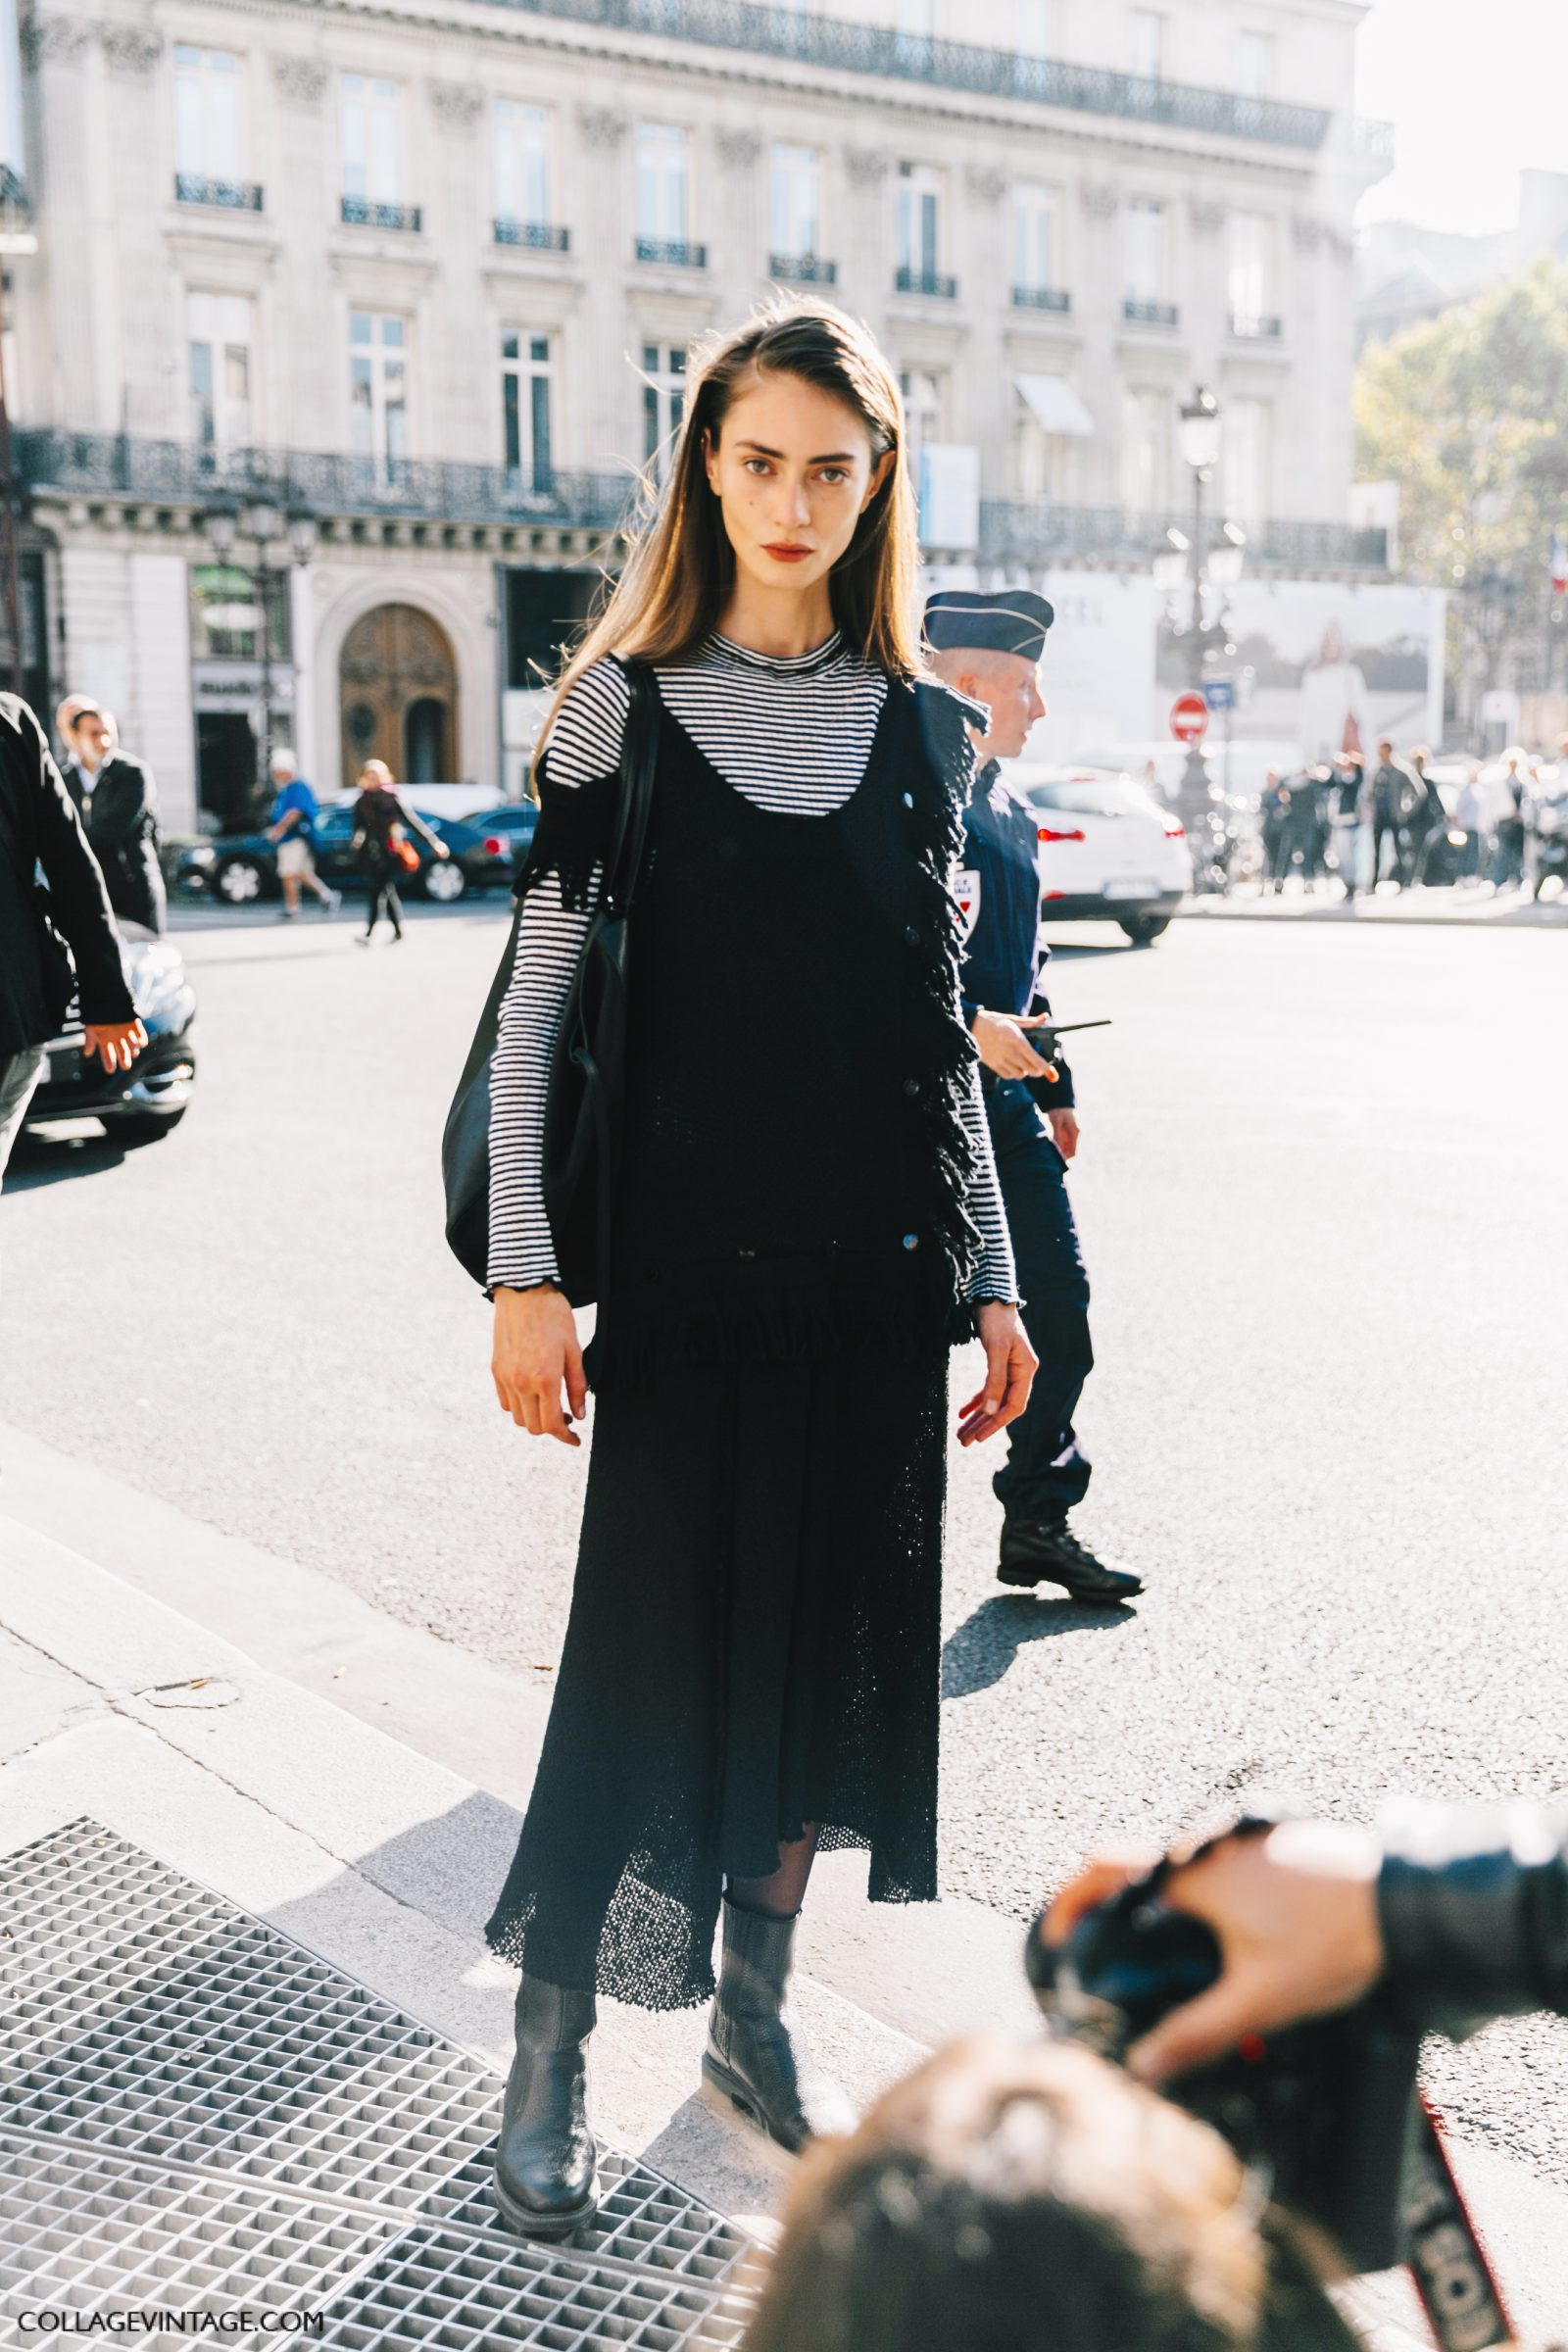 pfw-paris_fashion_week_ss17-street_style-outfits-collage_vintage-olympia_letan-hermes-stella_mccartney-sacai-45